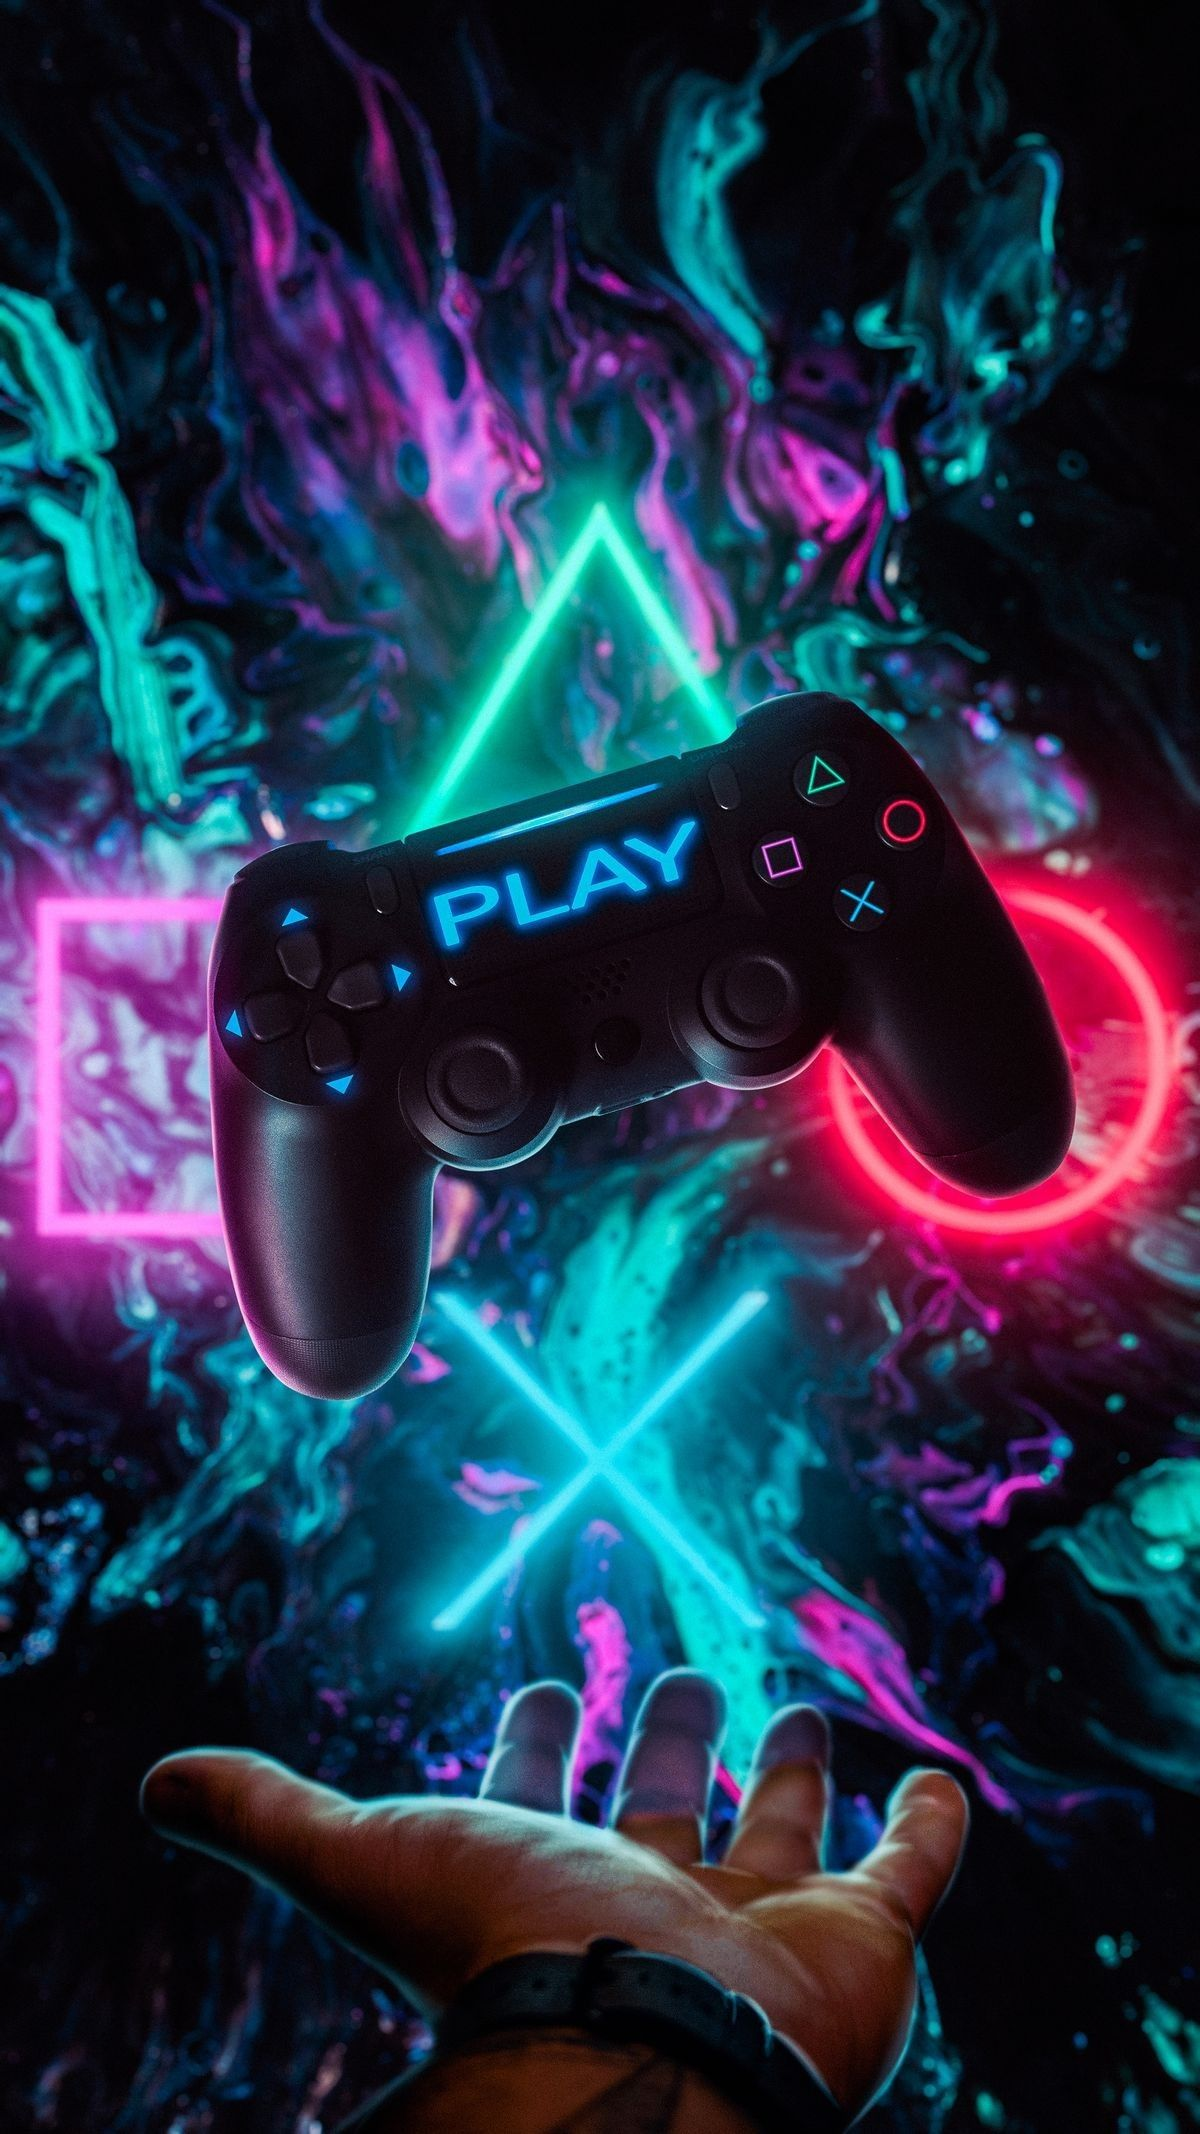 Play Game In 2020 Gaming Wallpapers Game Wallpaper Iphone Best Gaming Wallpapers